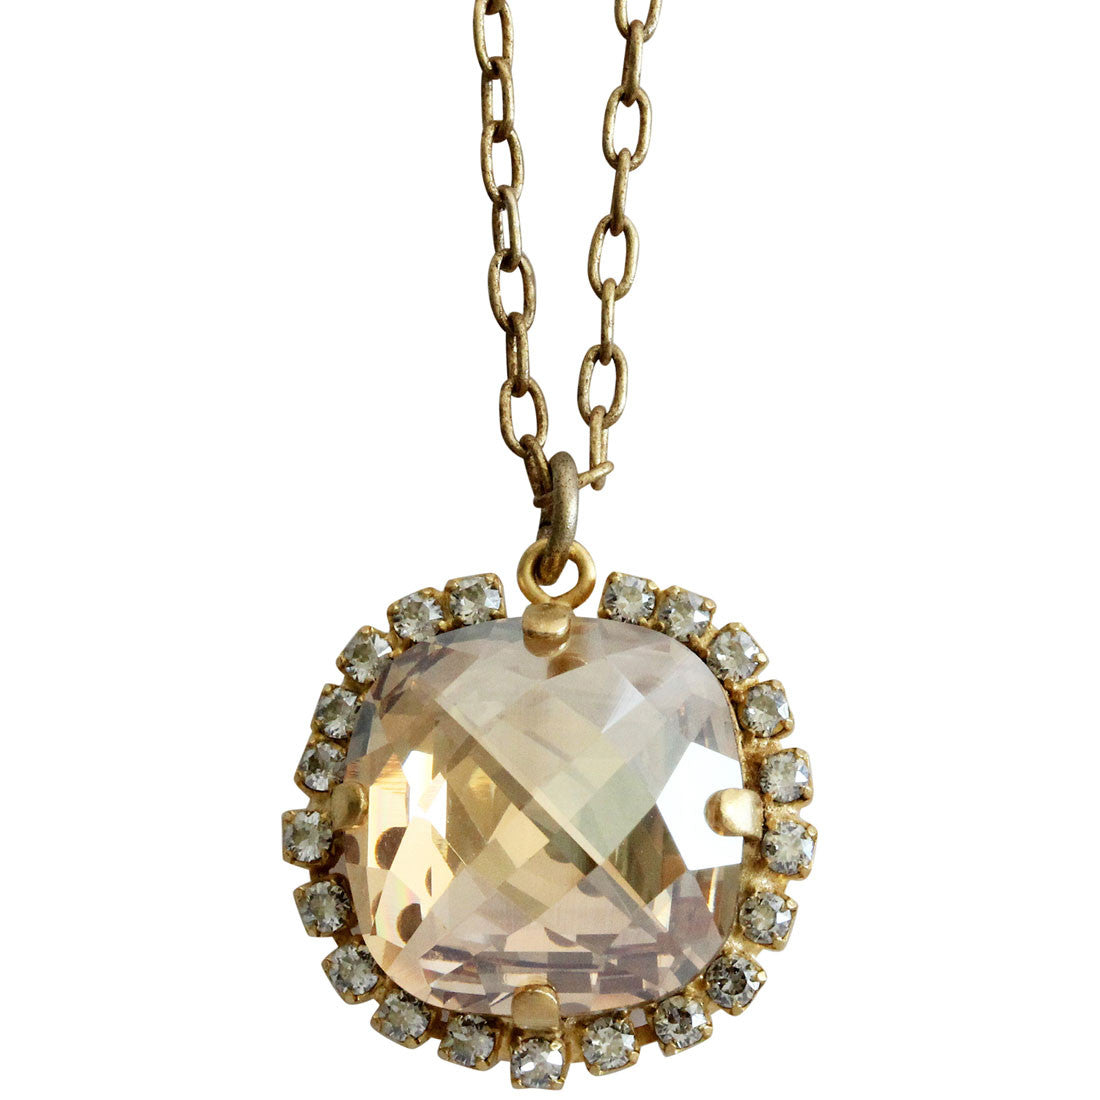 "Catherine Popesco 14k Gold Plated Pillow Cut Large Crystal Border Pendant Necklace, 18"" 4295GN Champagne"